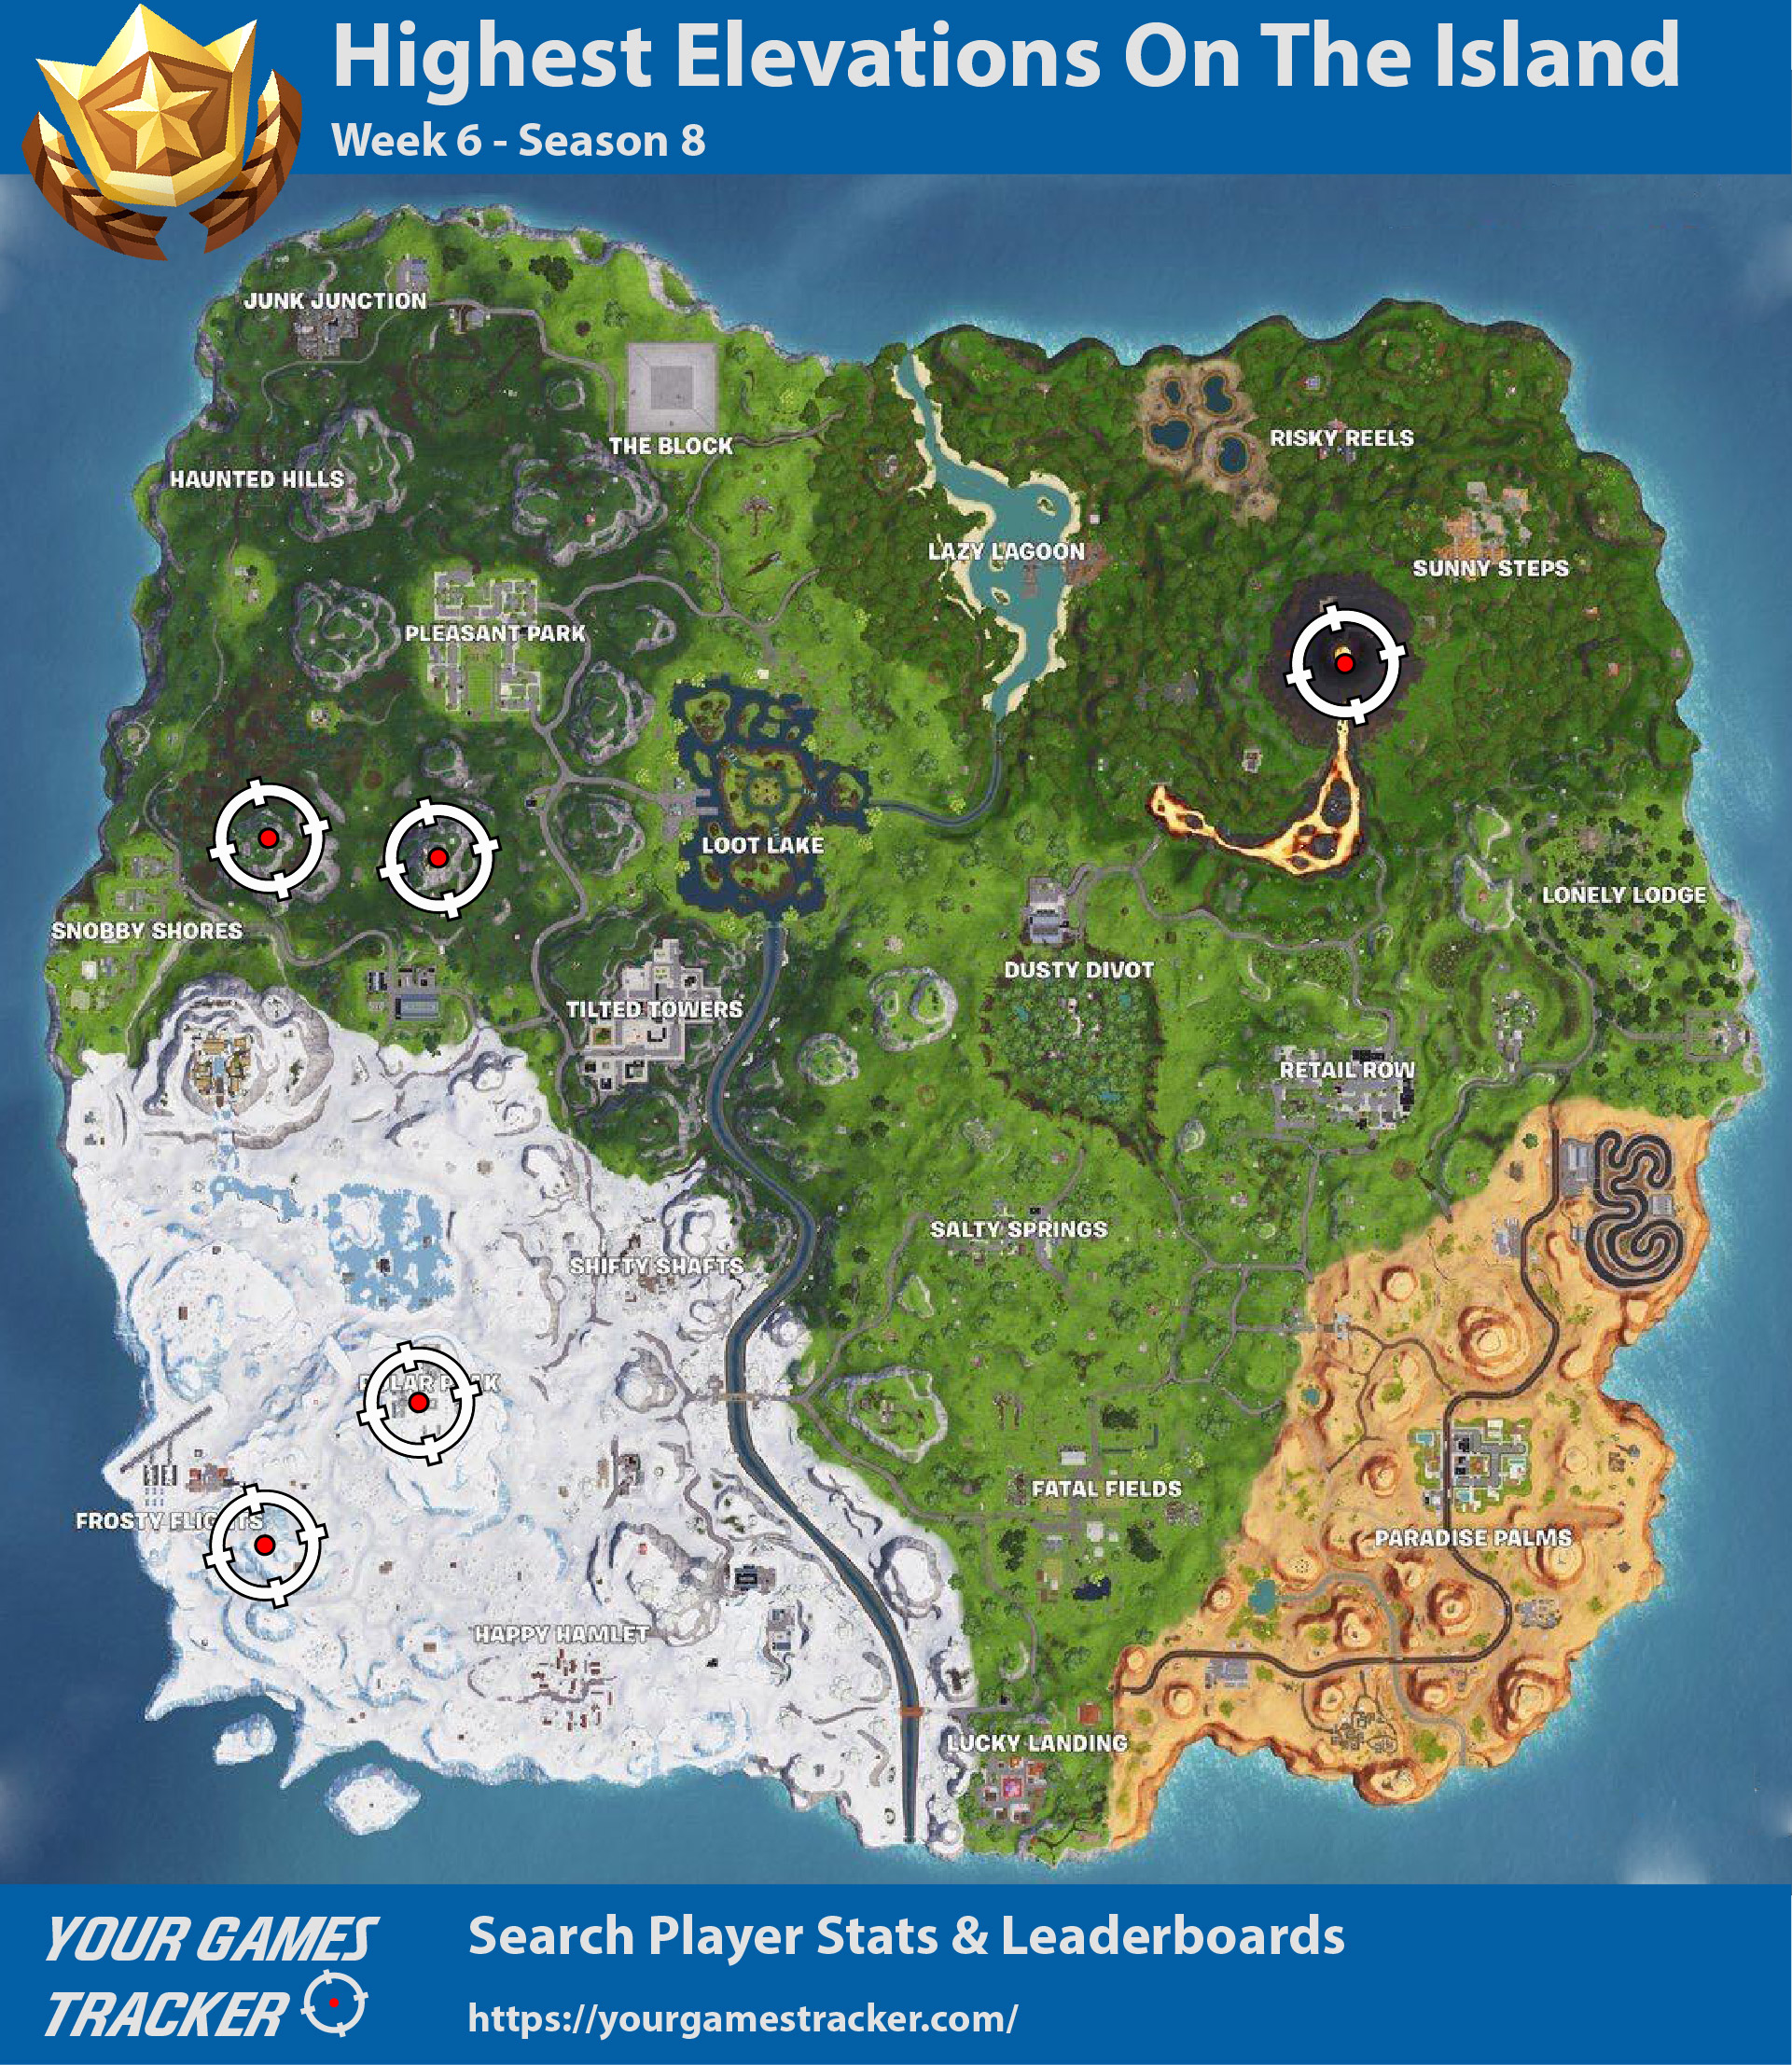 fortnite battle royale 5 Highest Elevations On The Island week 6 season 8